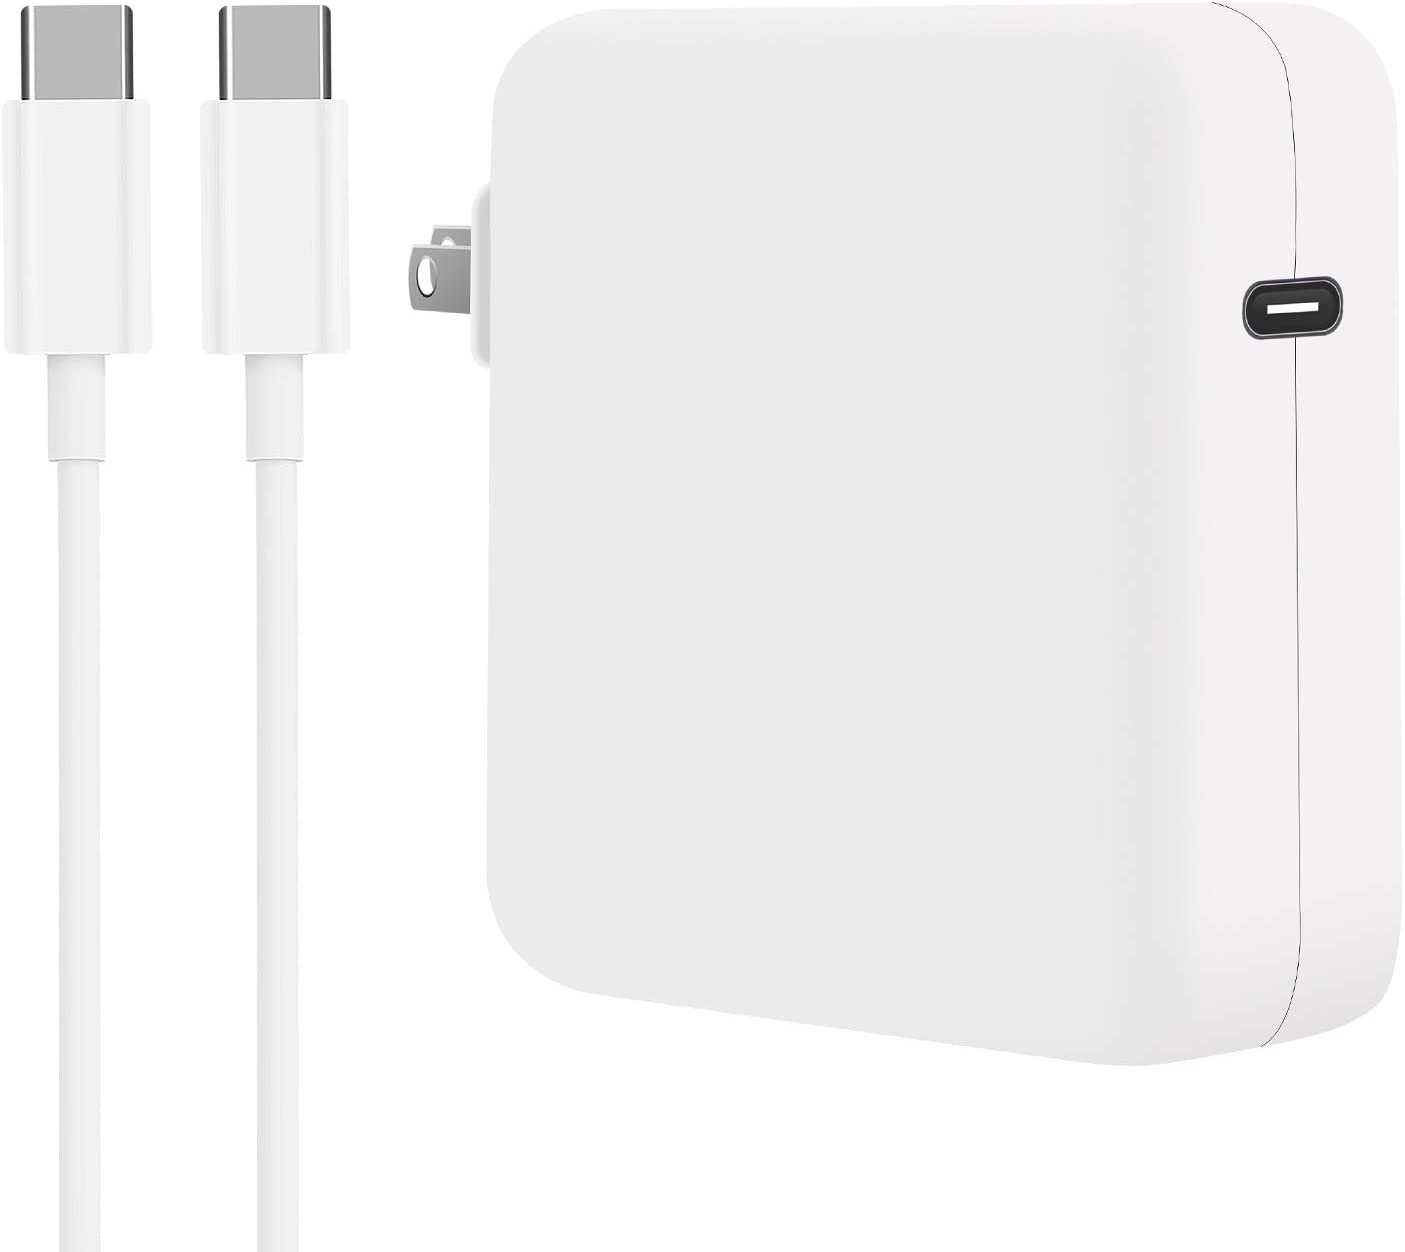 WUCHUKUI Max 88% OFF 61W USB C Charger Power Book Pro Ch Mac Laptop Adapter Detroit Mall